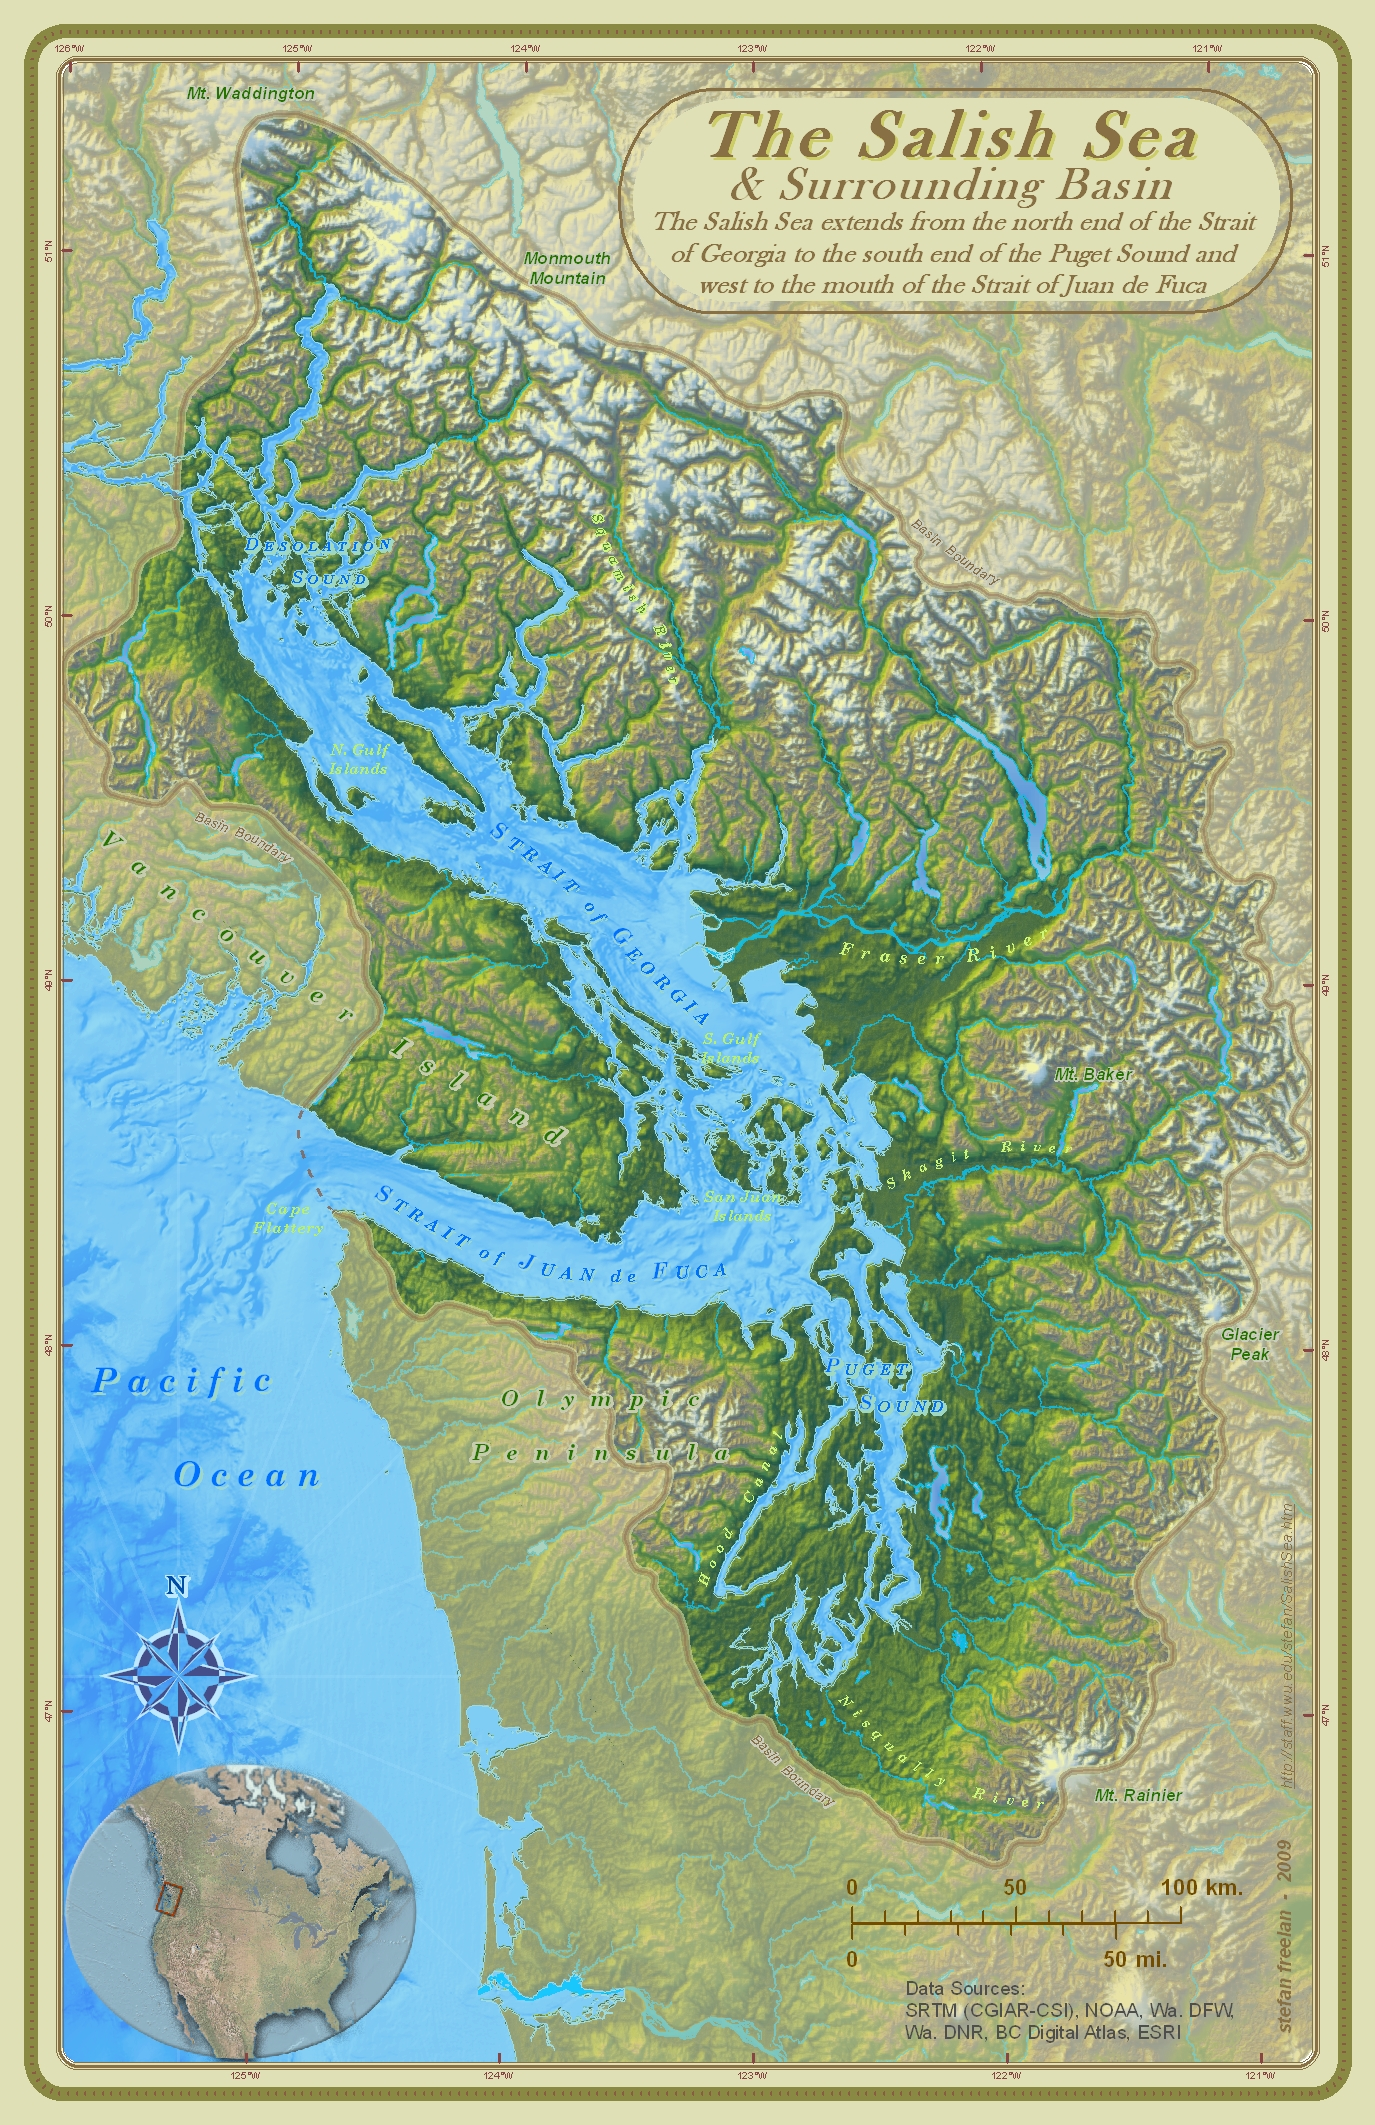 Map of the Salish Sea by Stefan Freelan